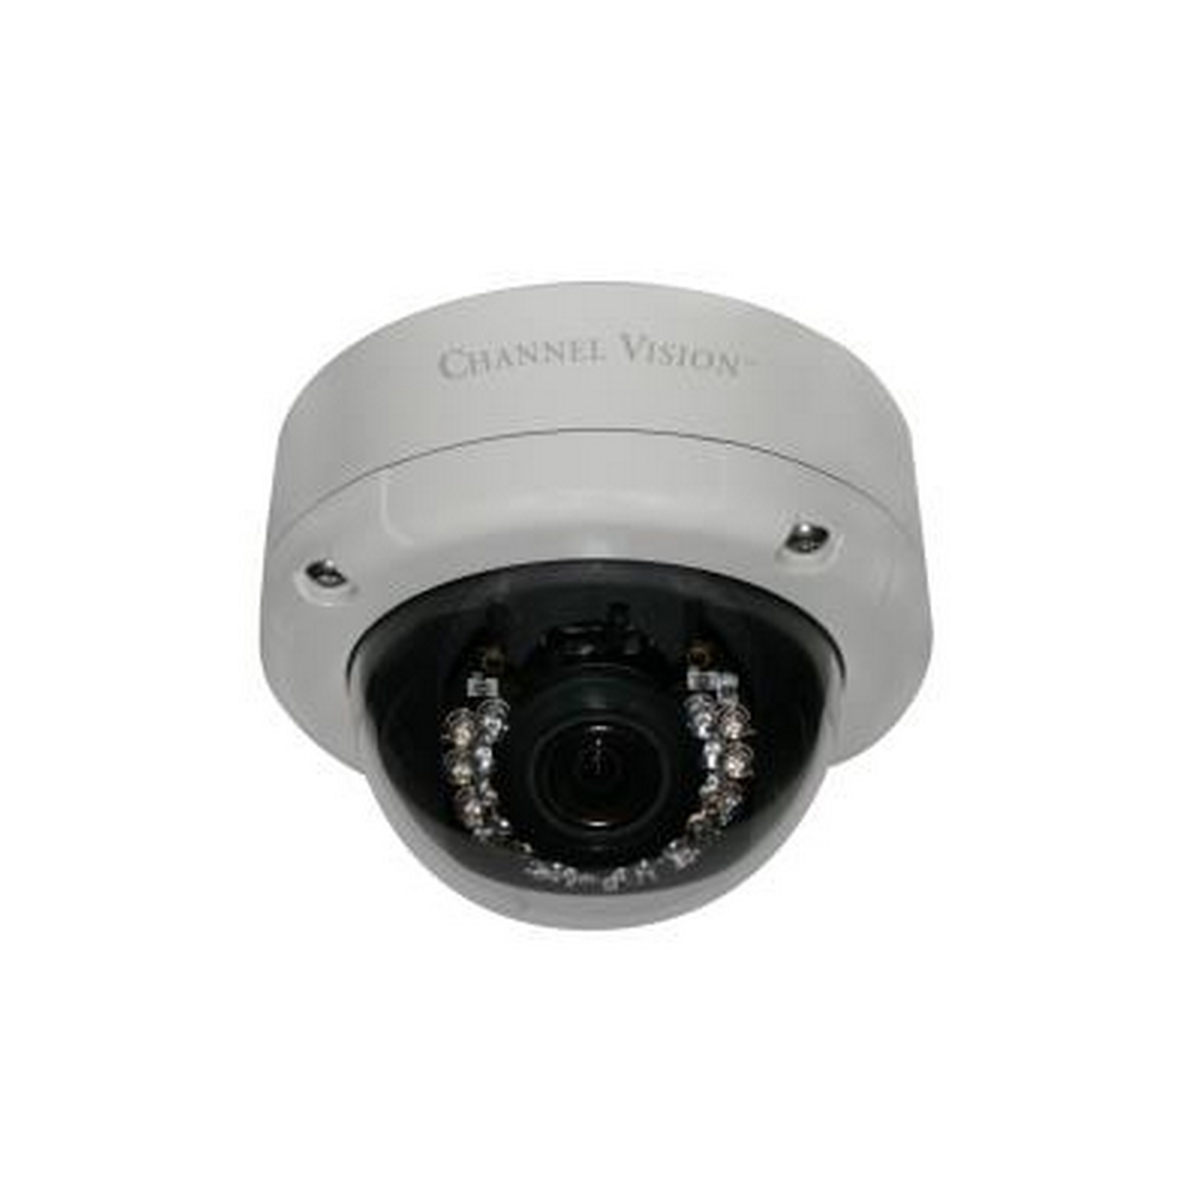 Channel Vision's 6564 2MP IP Dome with IR and POE